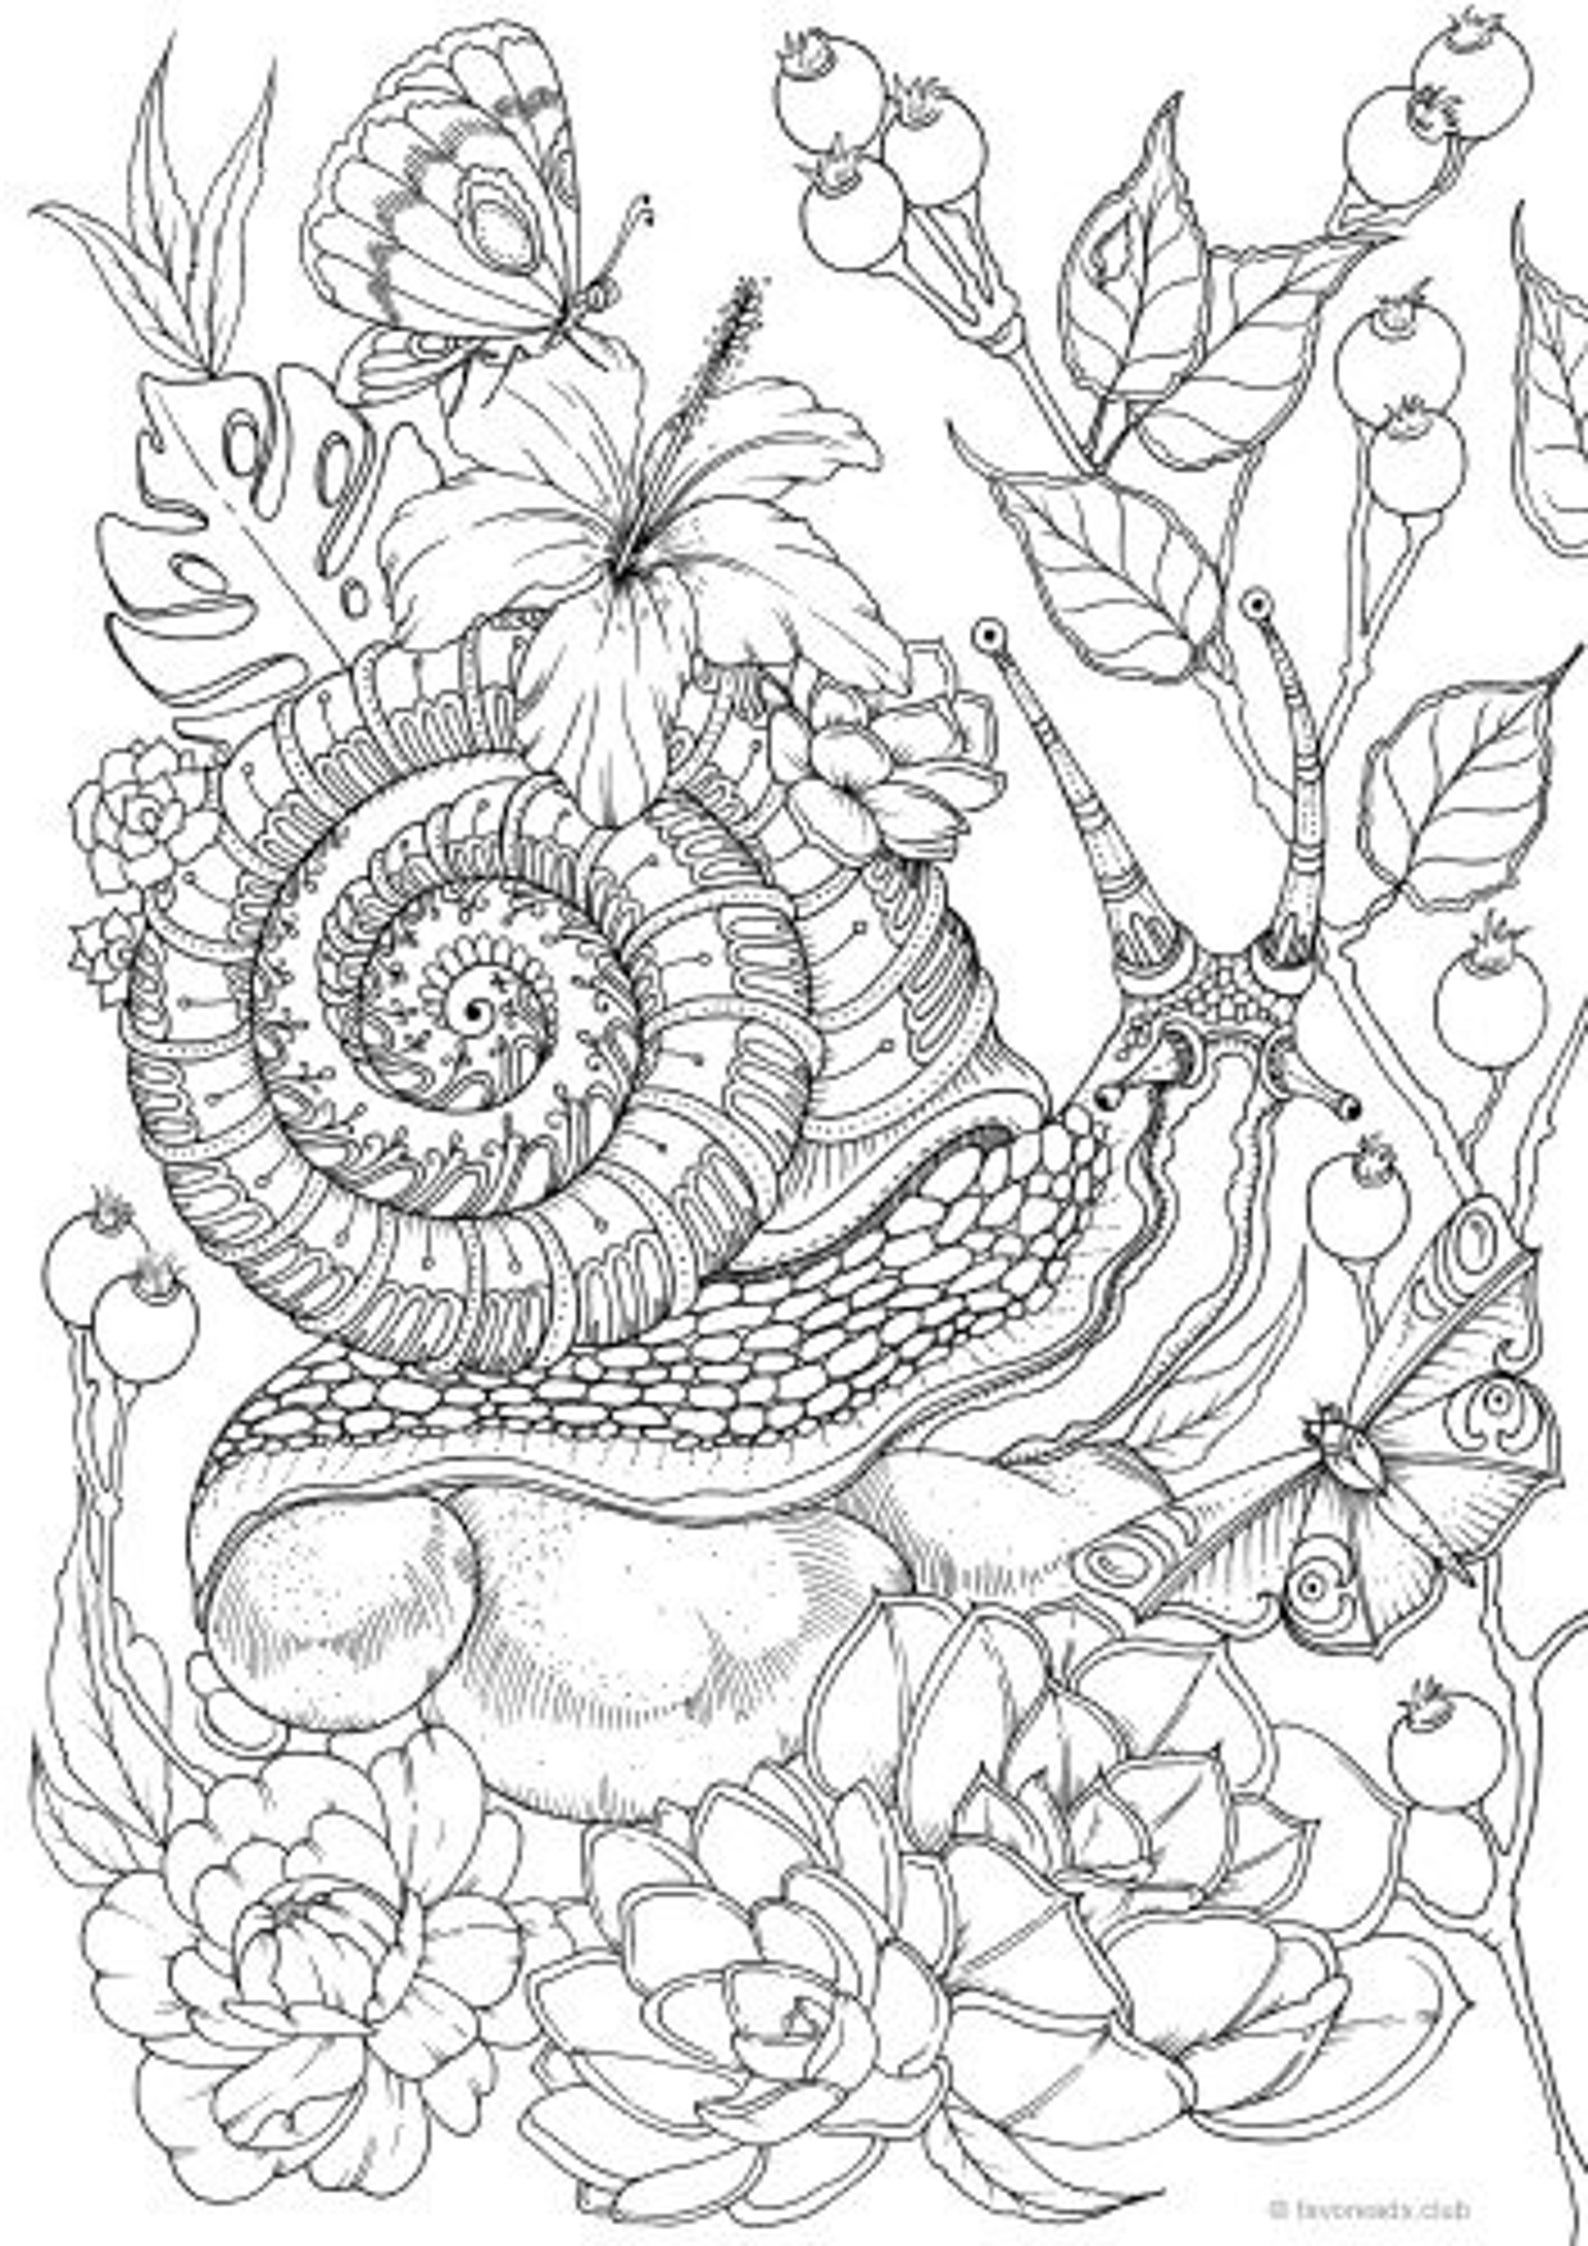 Super Hard Coloring Pages For Adults Colouring4u 78936 Hard Bird Coloring Pages Animal Coloring Pages Coloring Pictures Of Animals